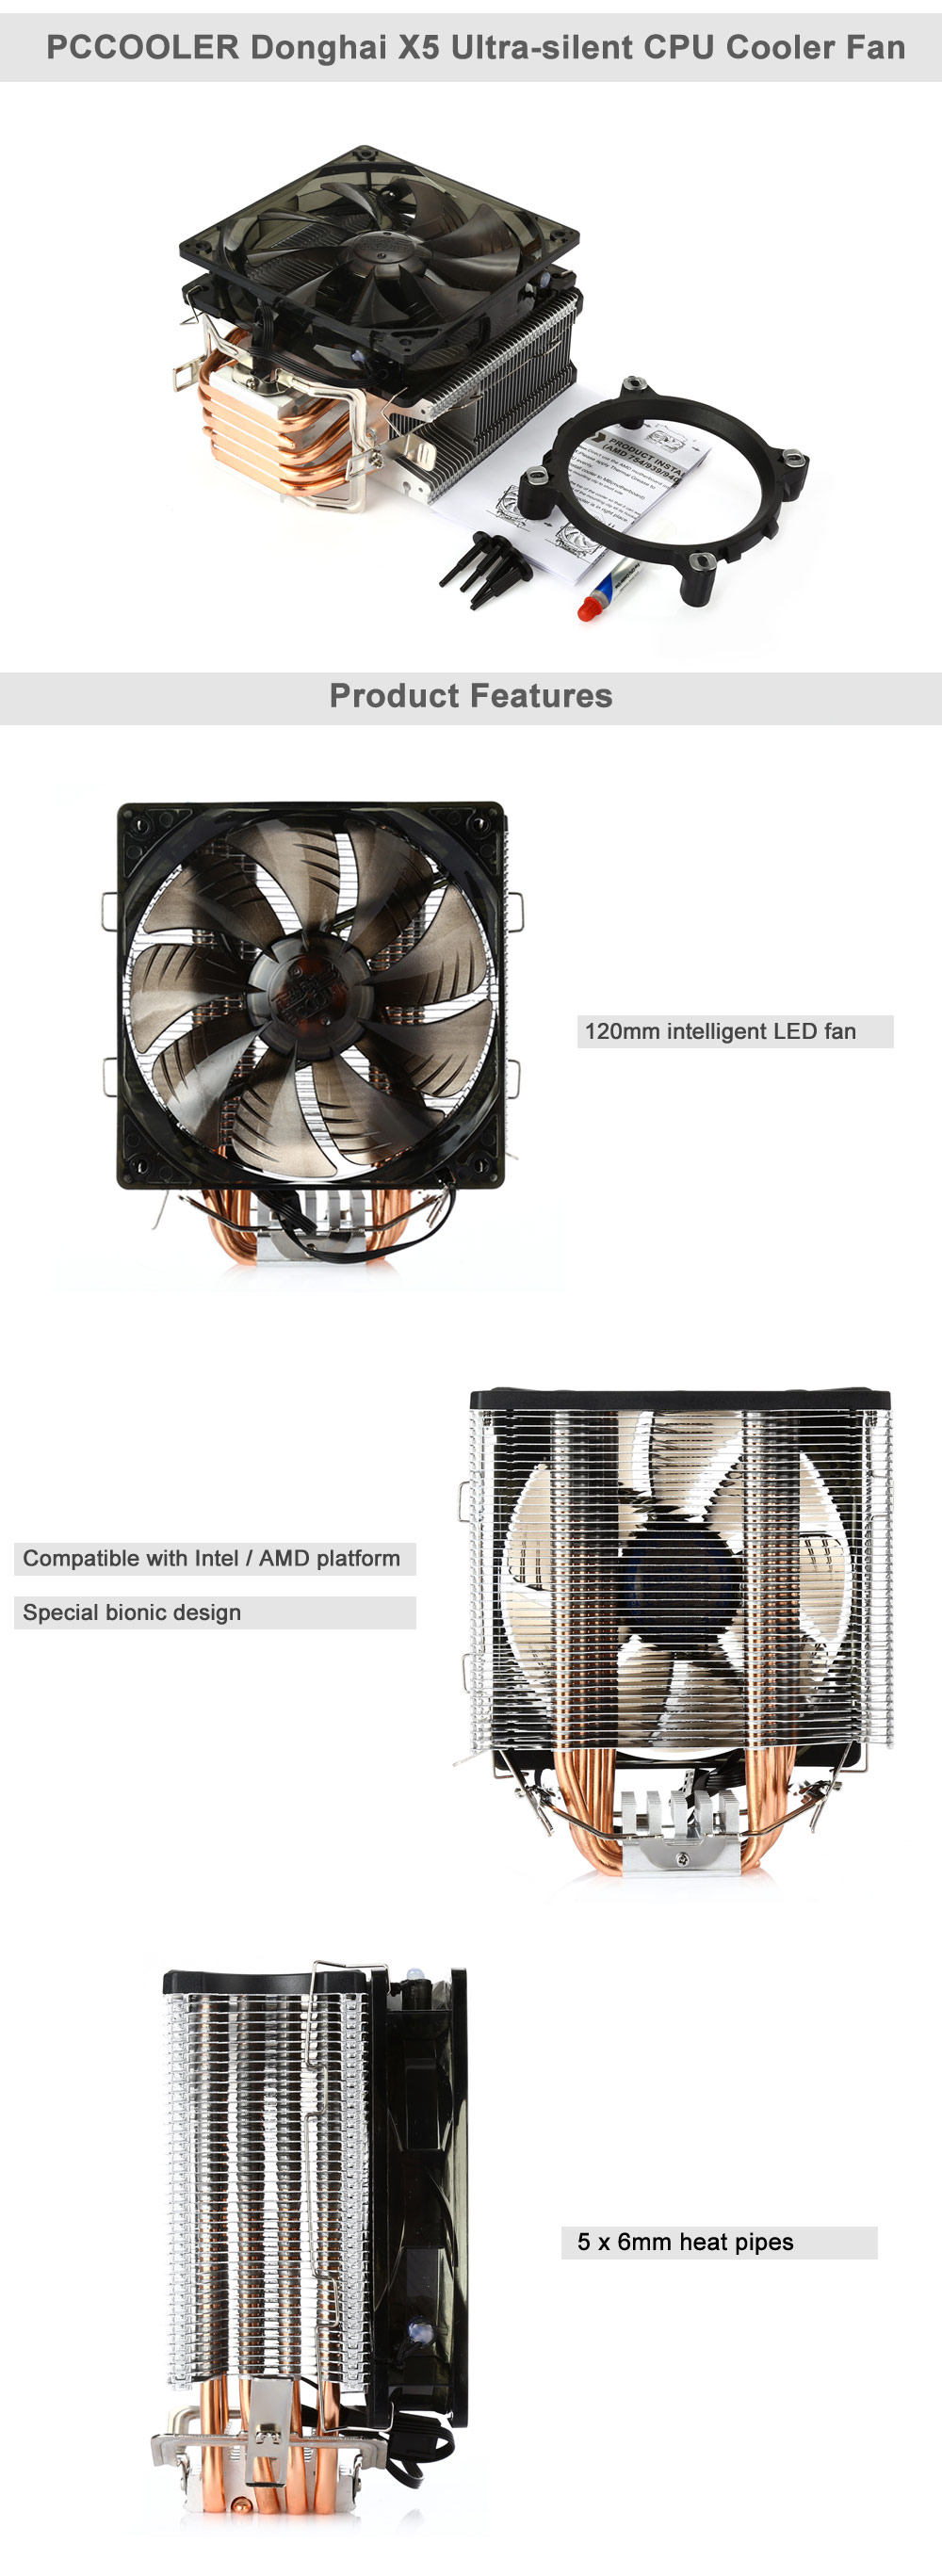 DealHills.com Processor cooler PCCOOLER Donghai X5 Components